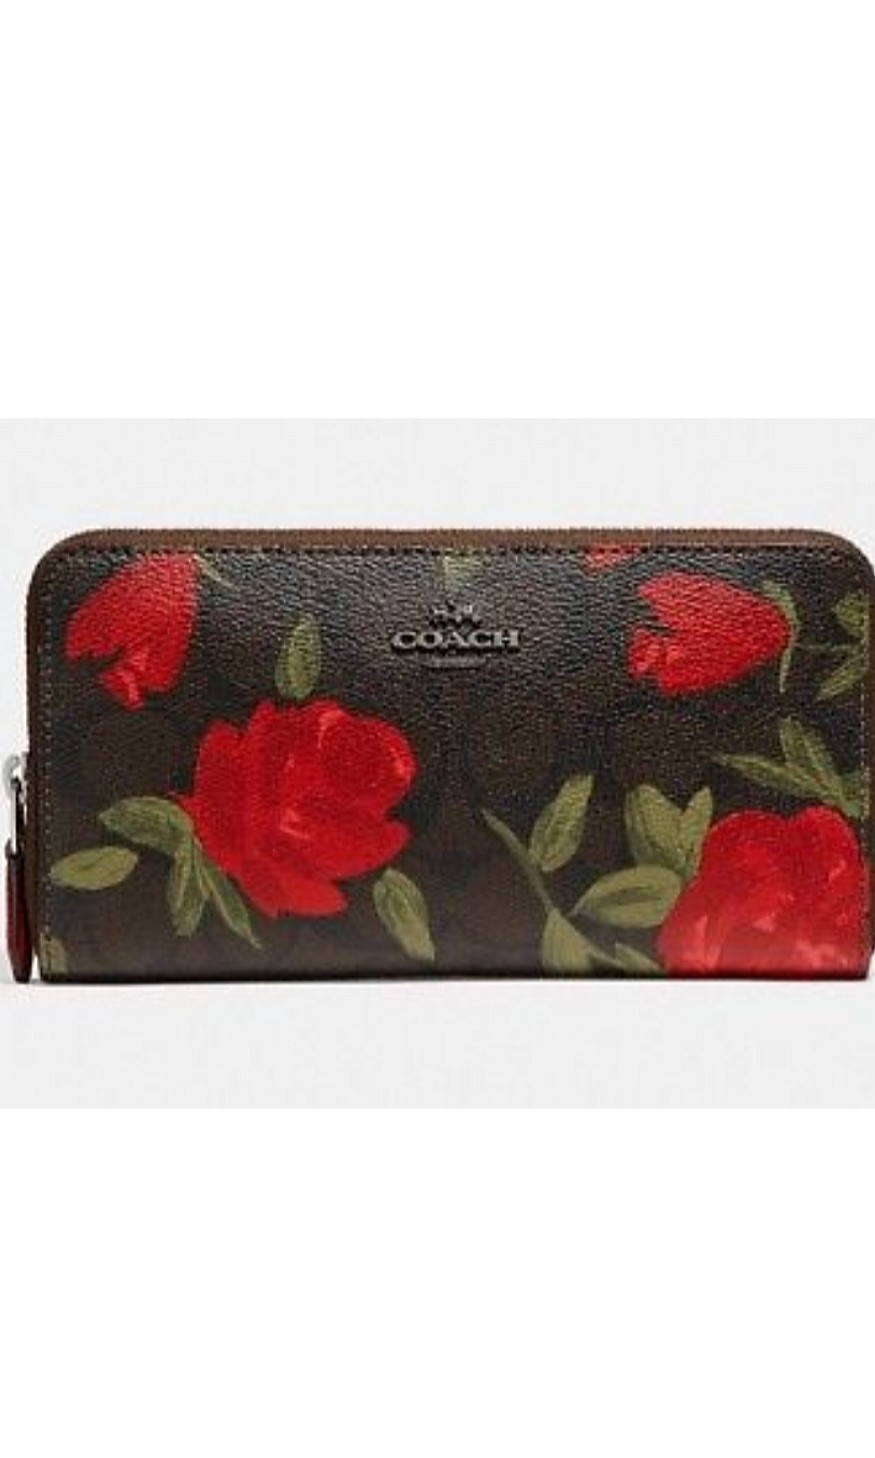 Authentic Coach Multi Accordion Zip with Camo Rose Floral Print, Women s  Fashion, Bags   Wallets, Wallets on Carousell d5b5582e8b